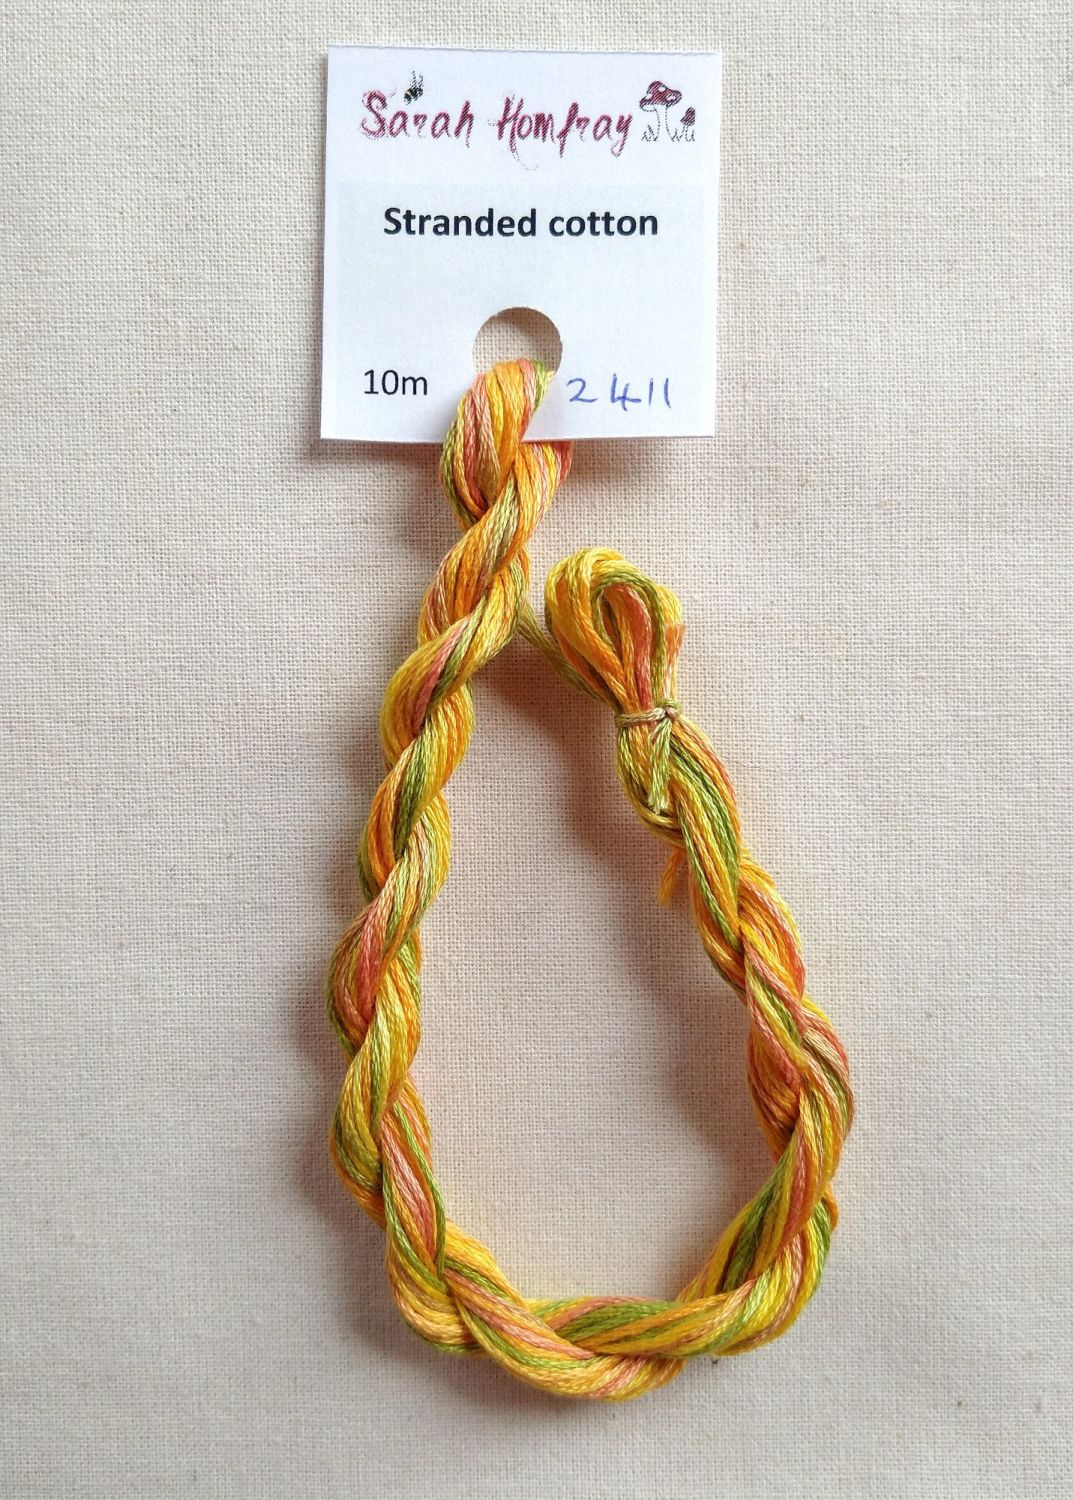 Madeira Stranded cotton, variegated -  Sunrise 2411